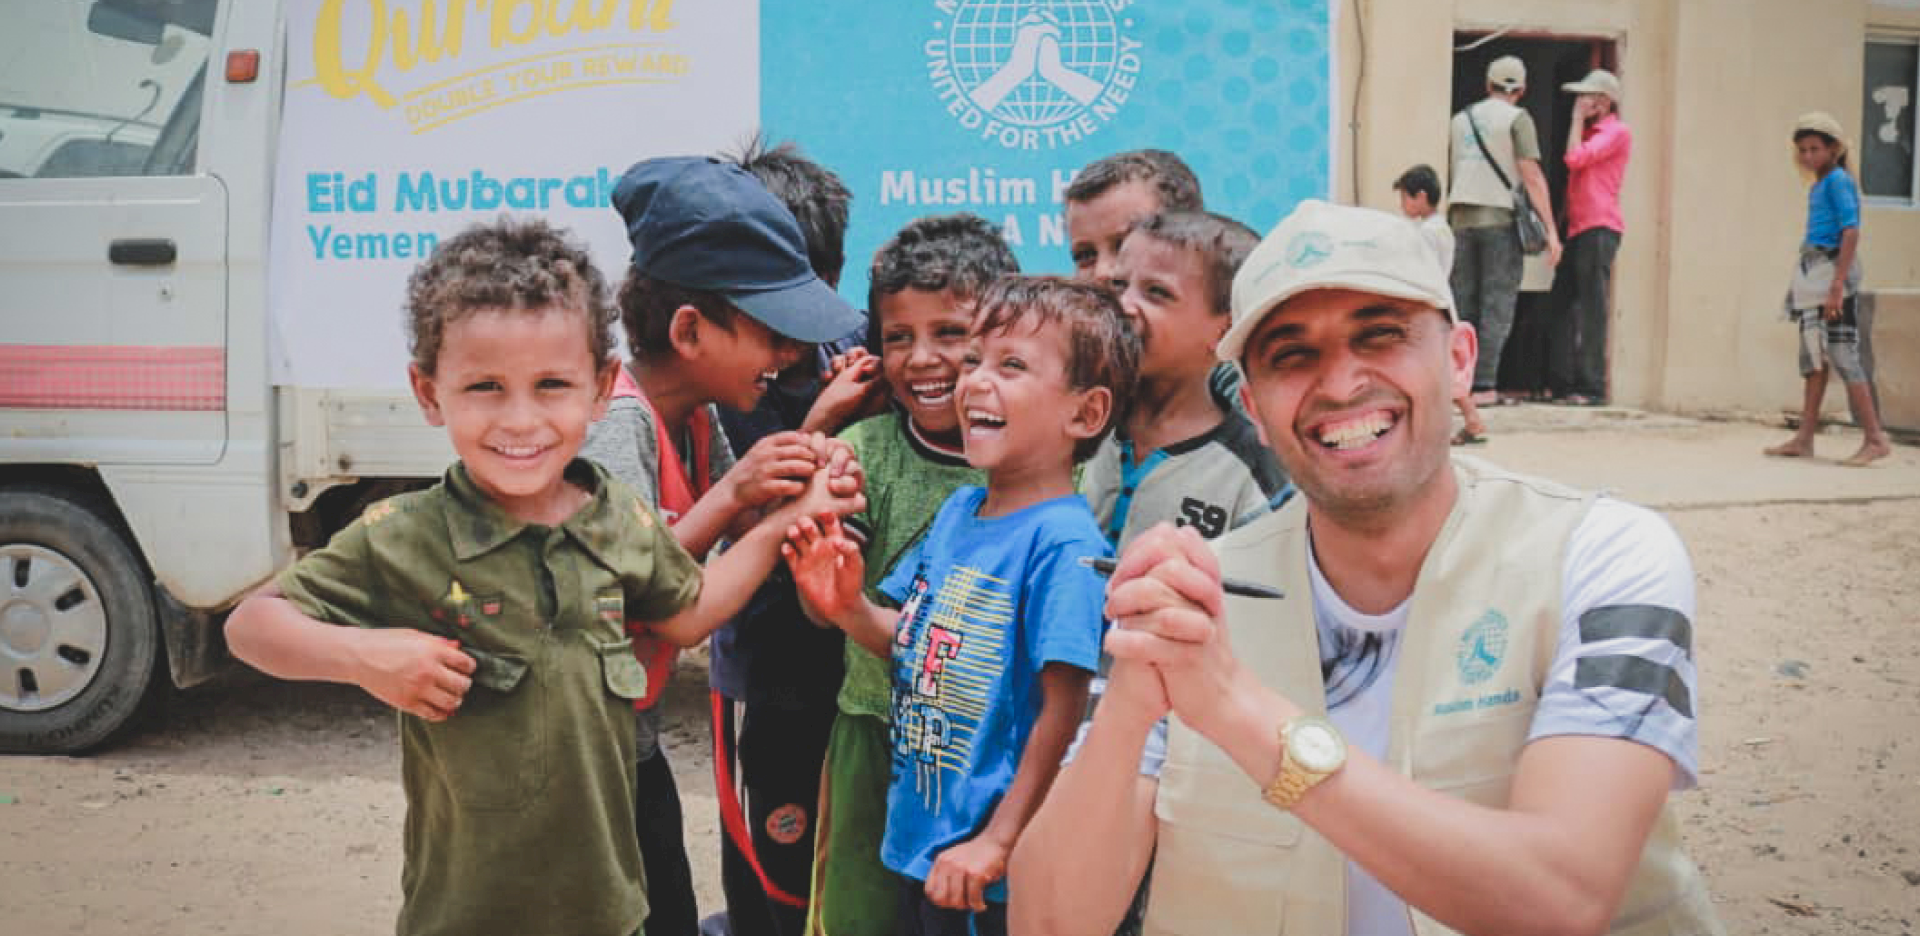 Your Qurbanis Provided Almost 4 2 Million Meals! | Muslim